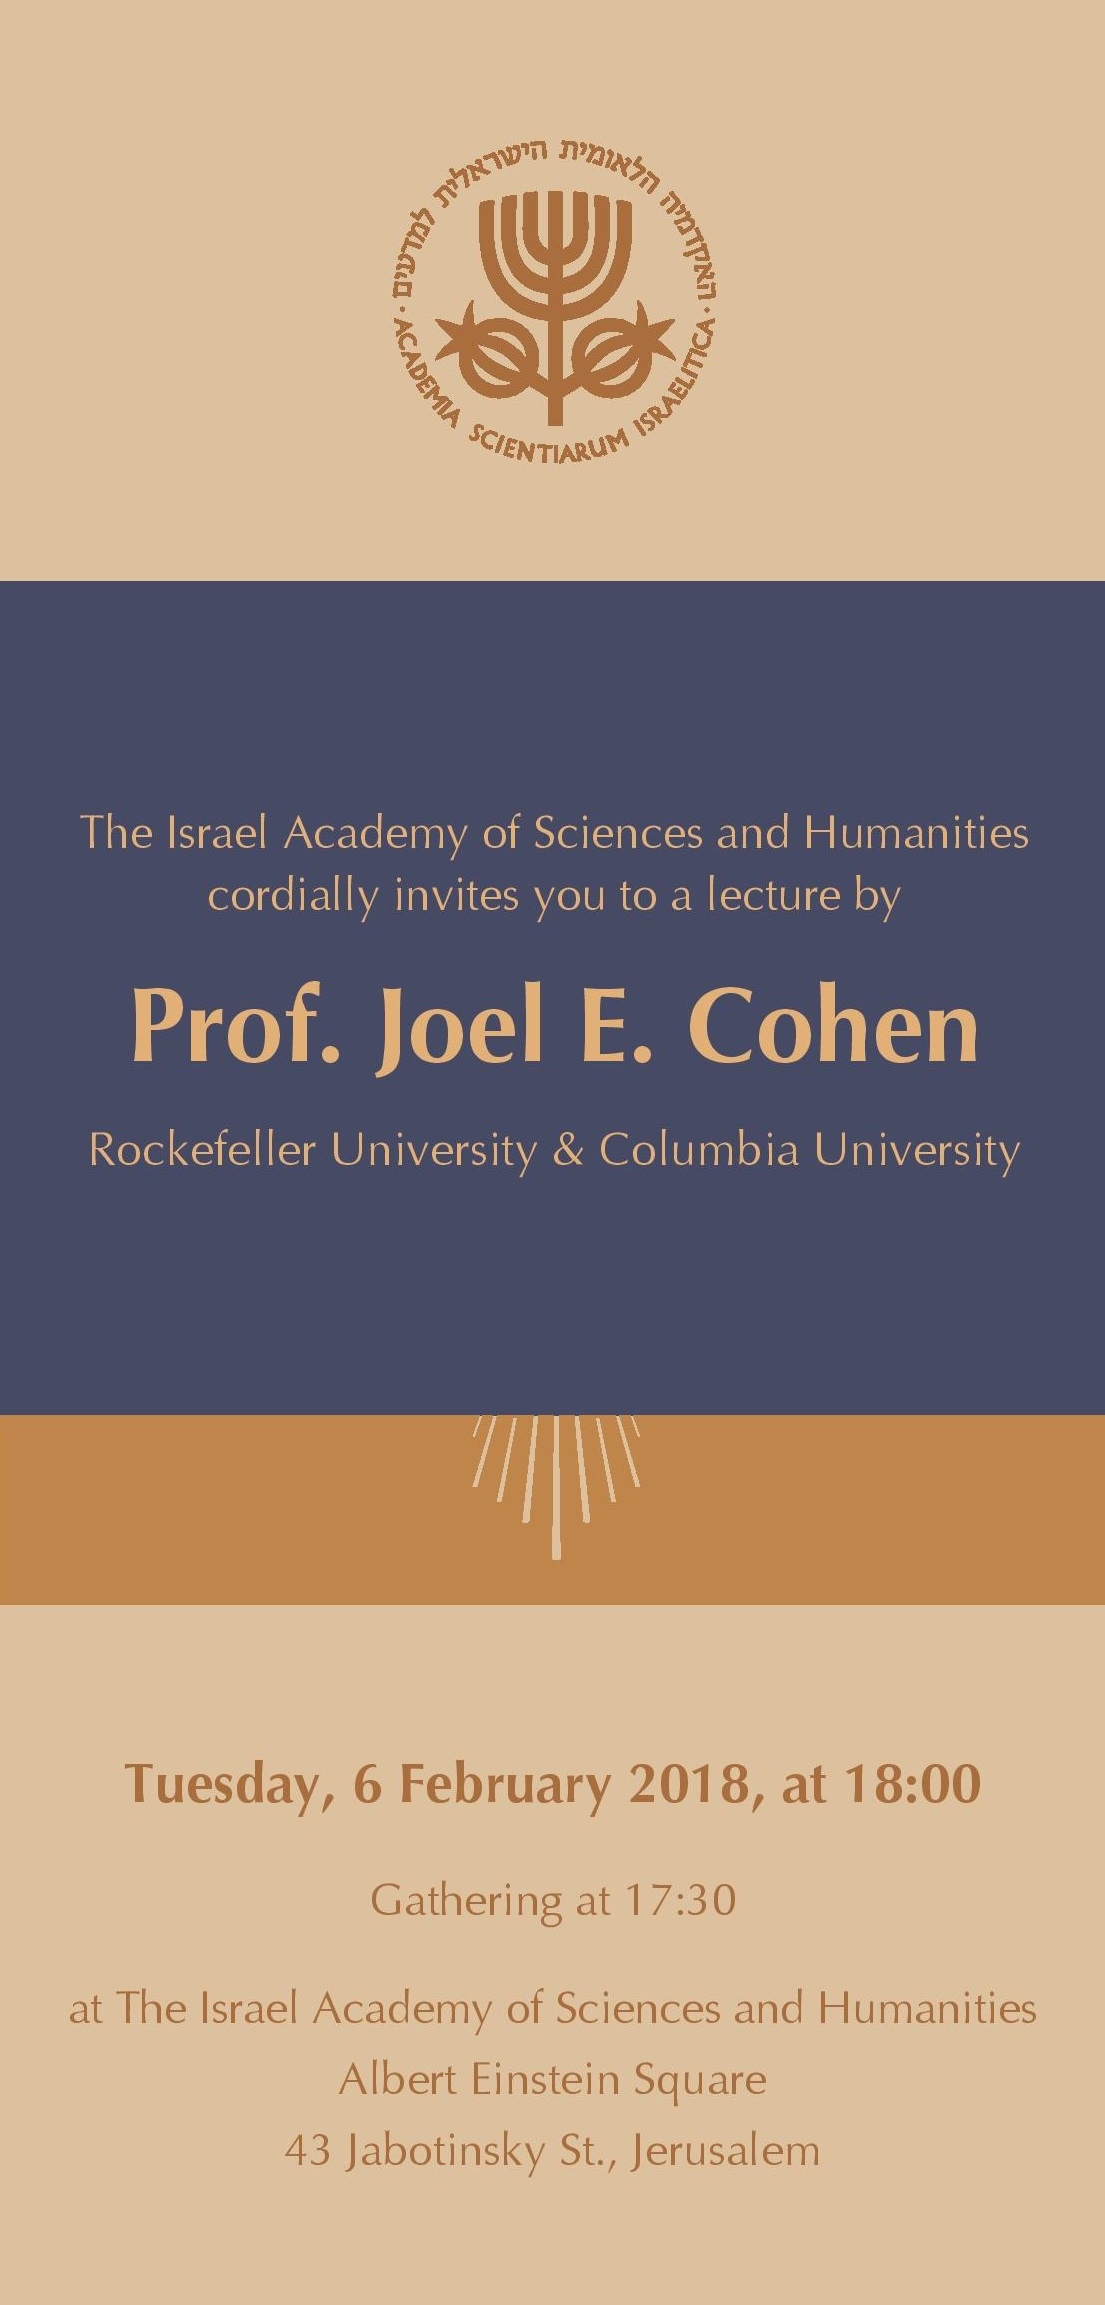 Lecture by Prof. Joel E. Cohen: Life Time - the Meanings and Limits of Age